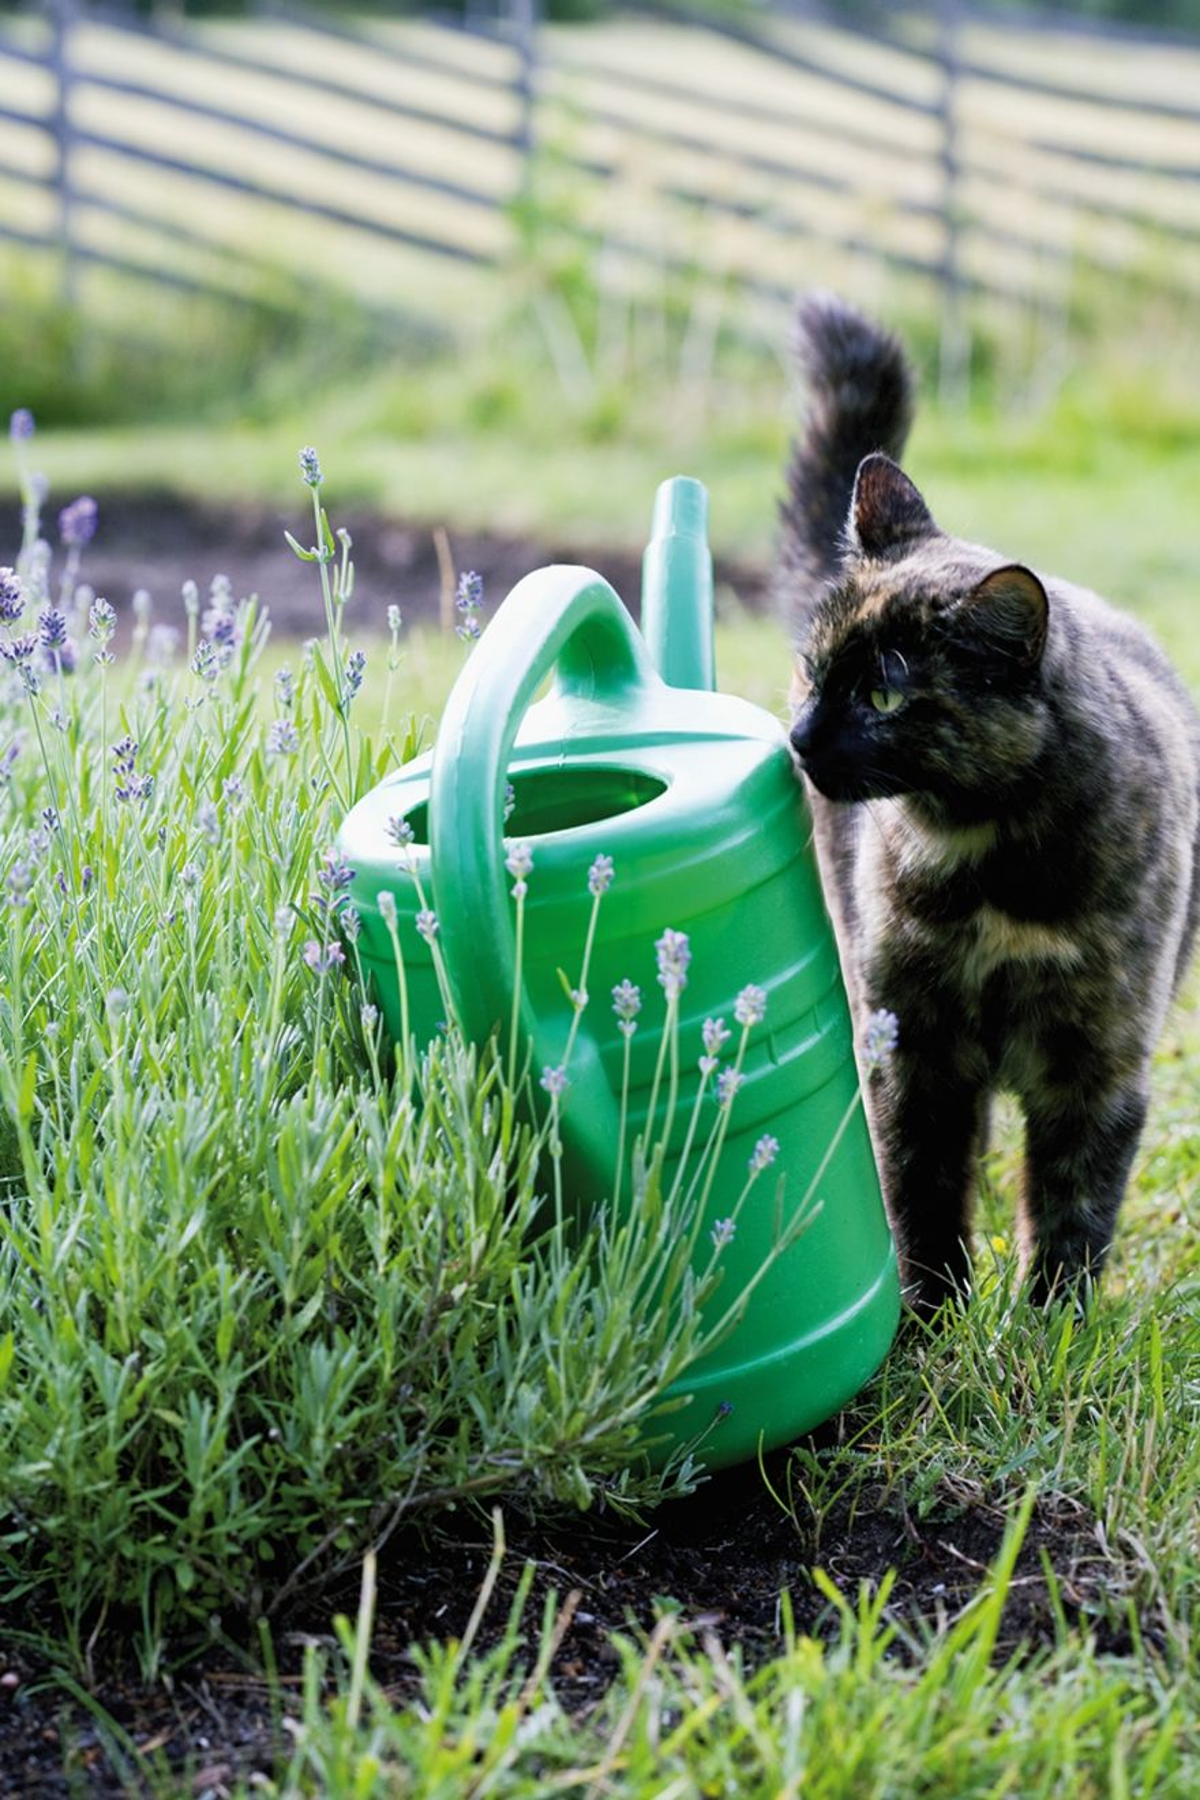 Cats may be tempted to drink from outdoor receptacles such as watering cans; owners need to ensure that no toxic chemicals remain.